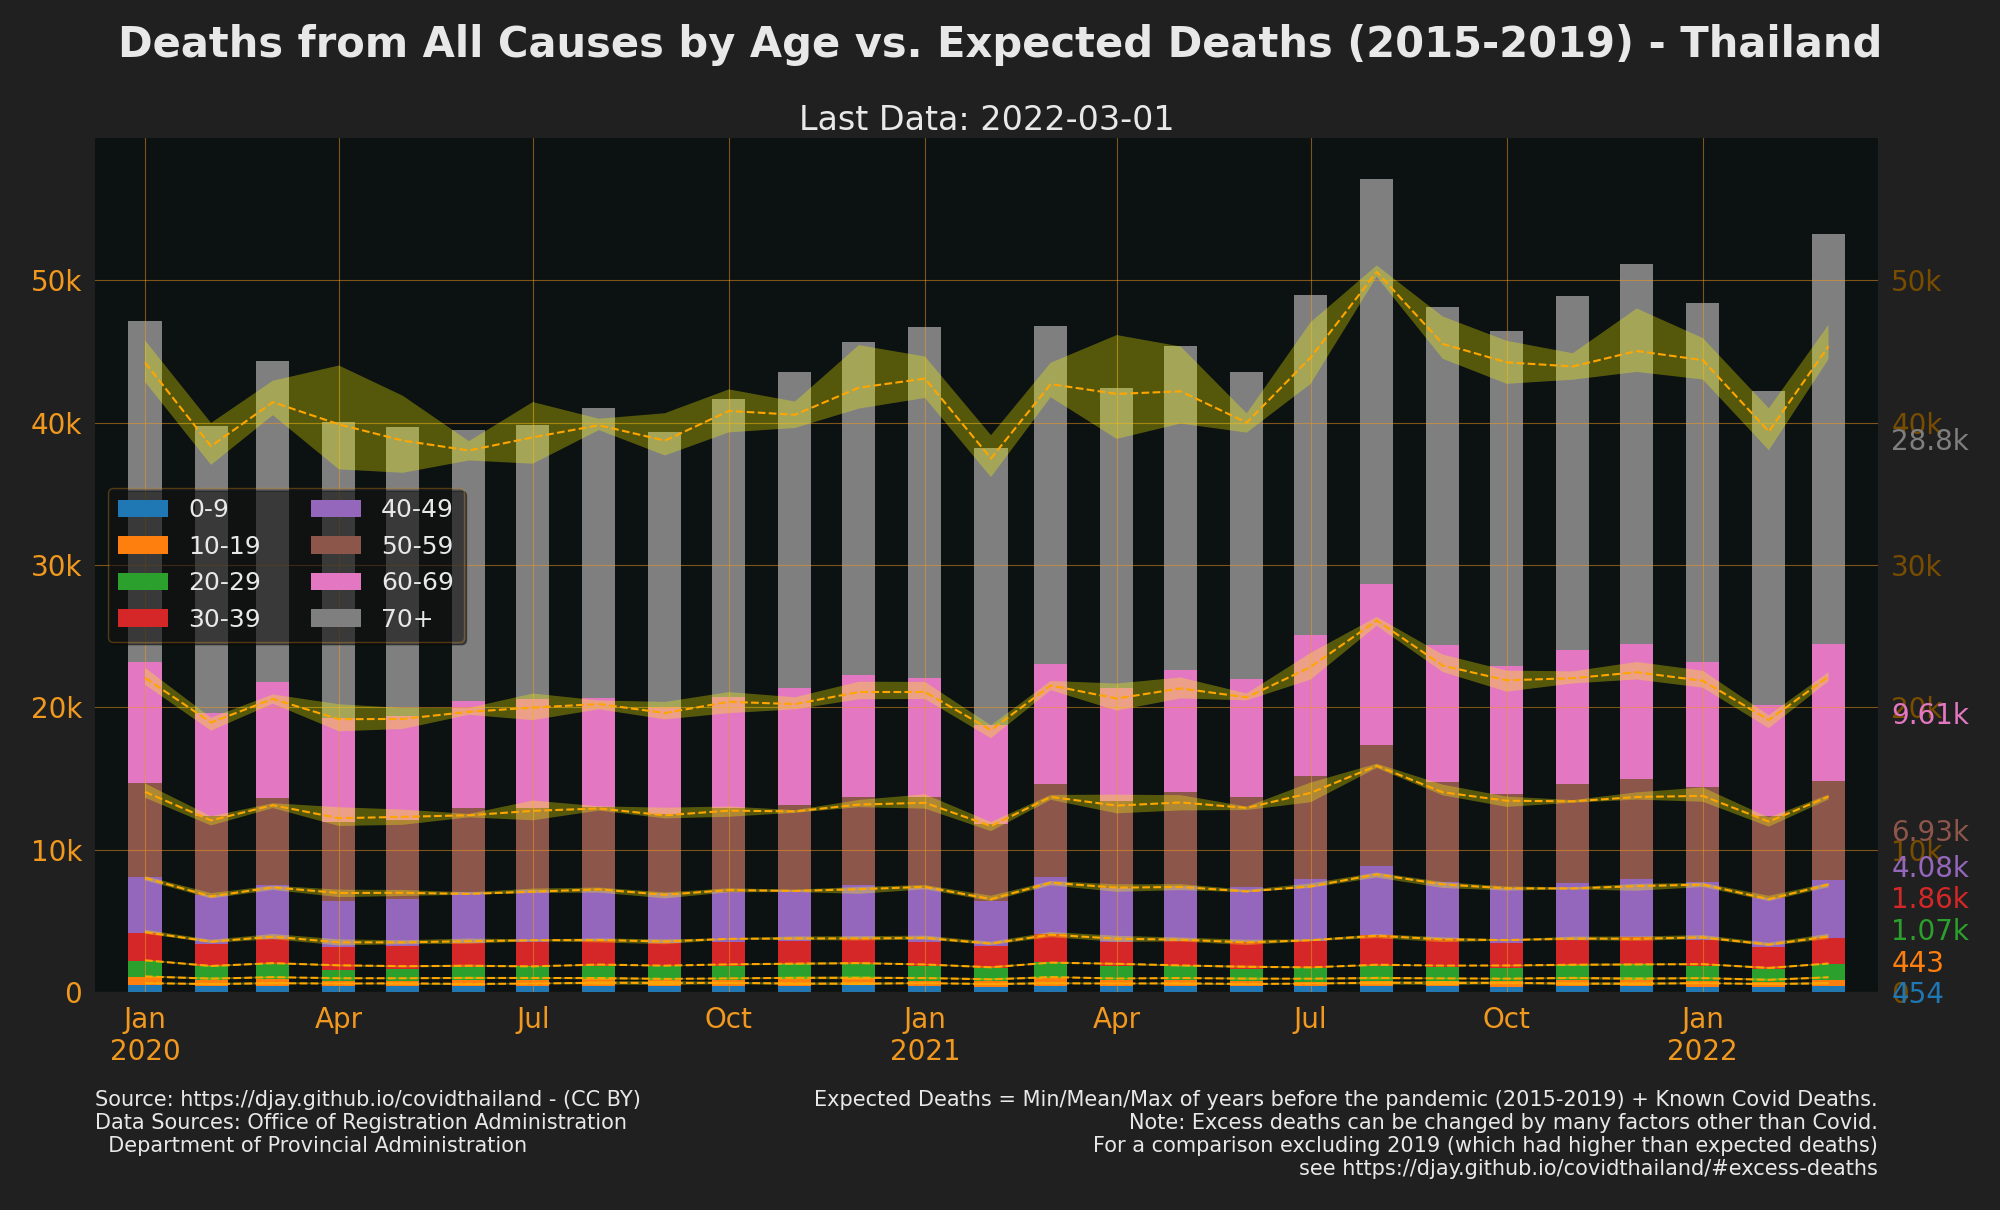 Thailand Excess Deaths by Age